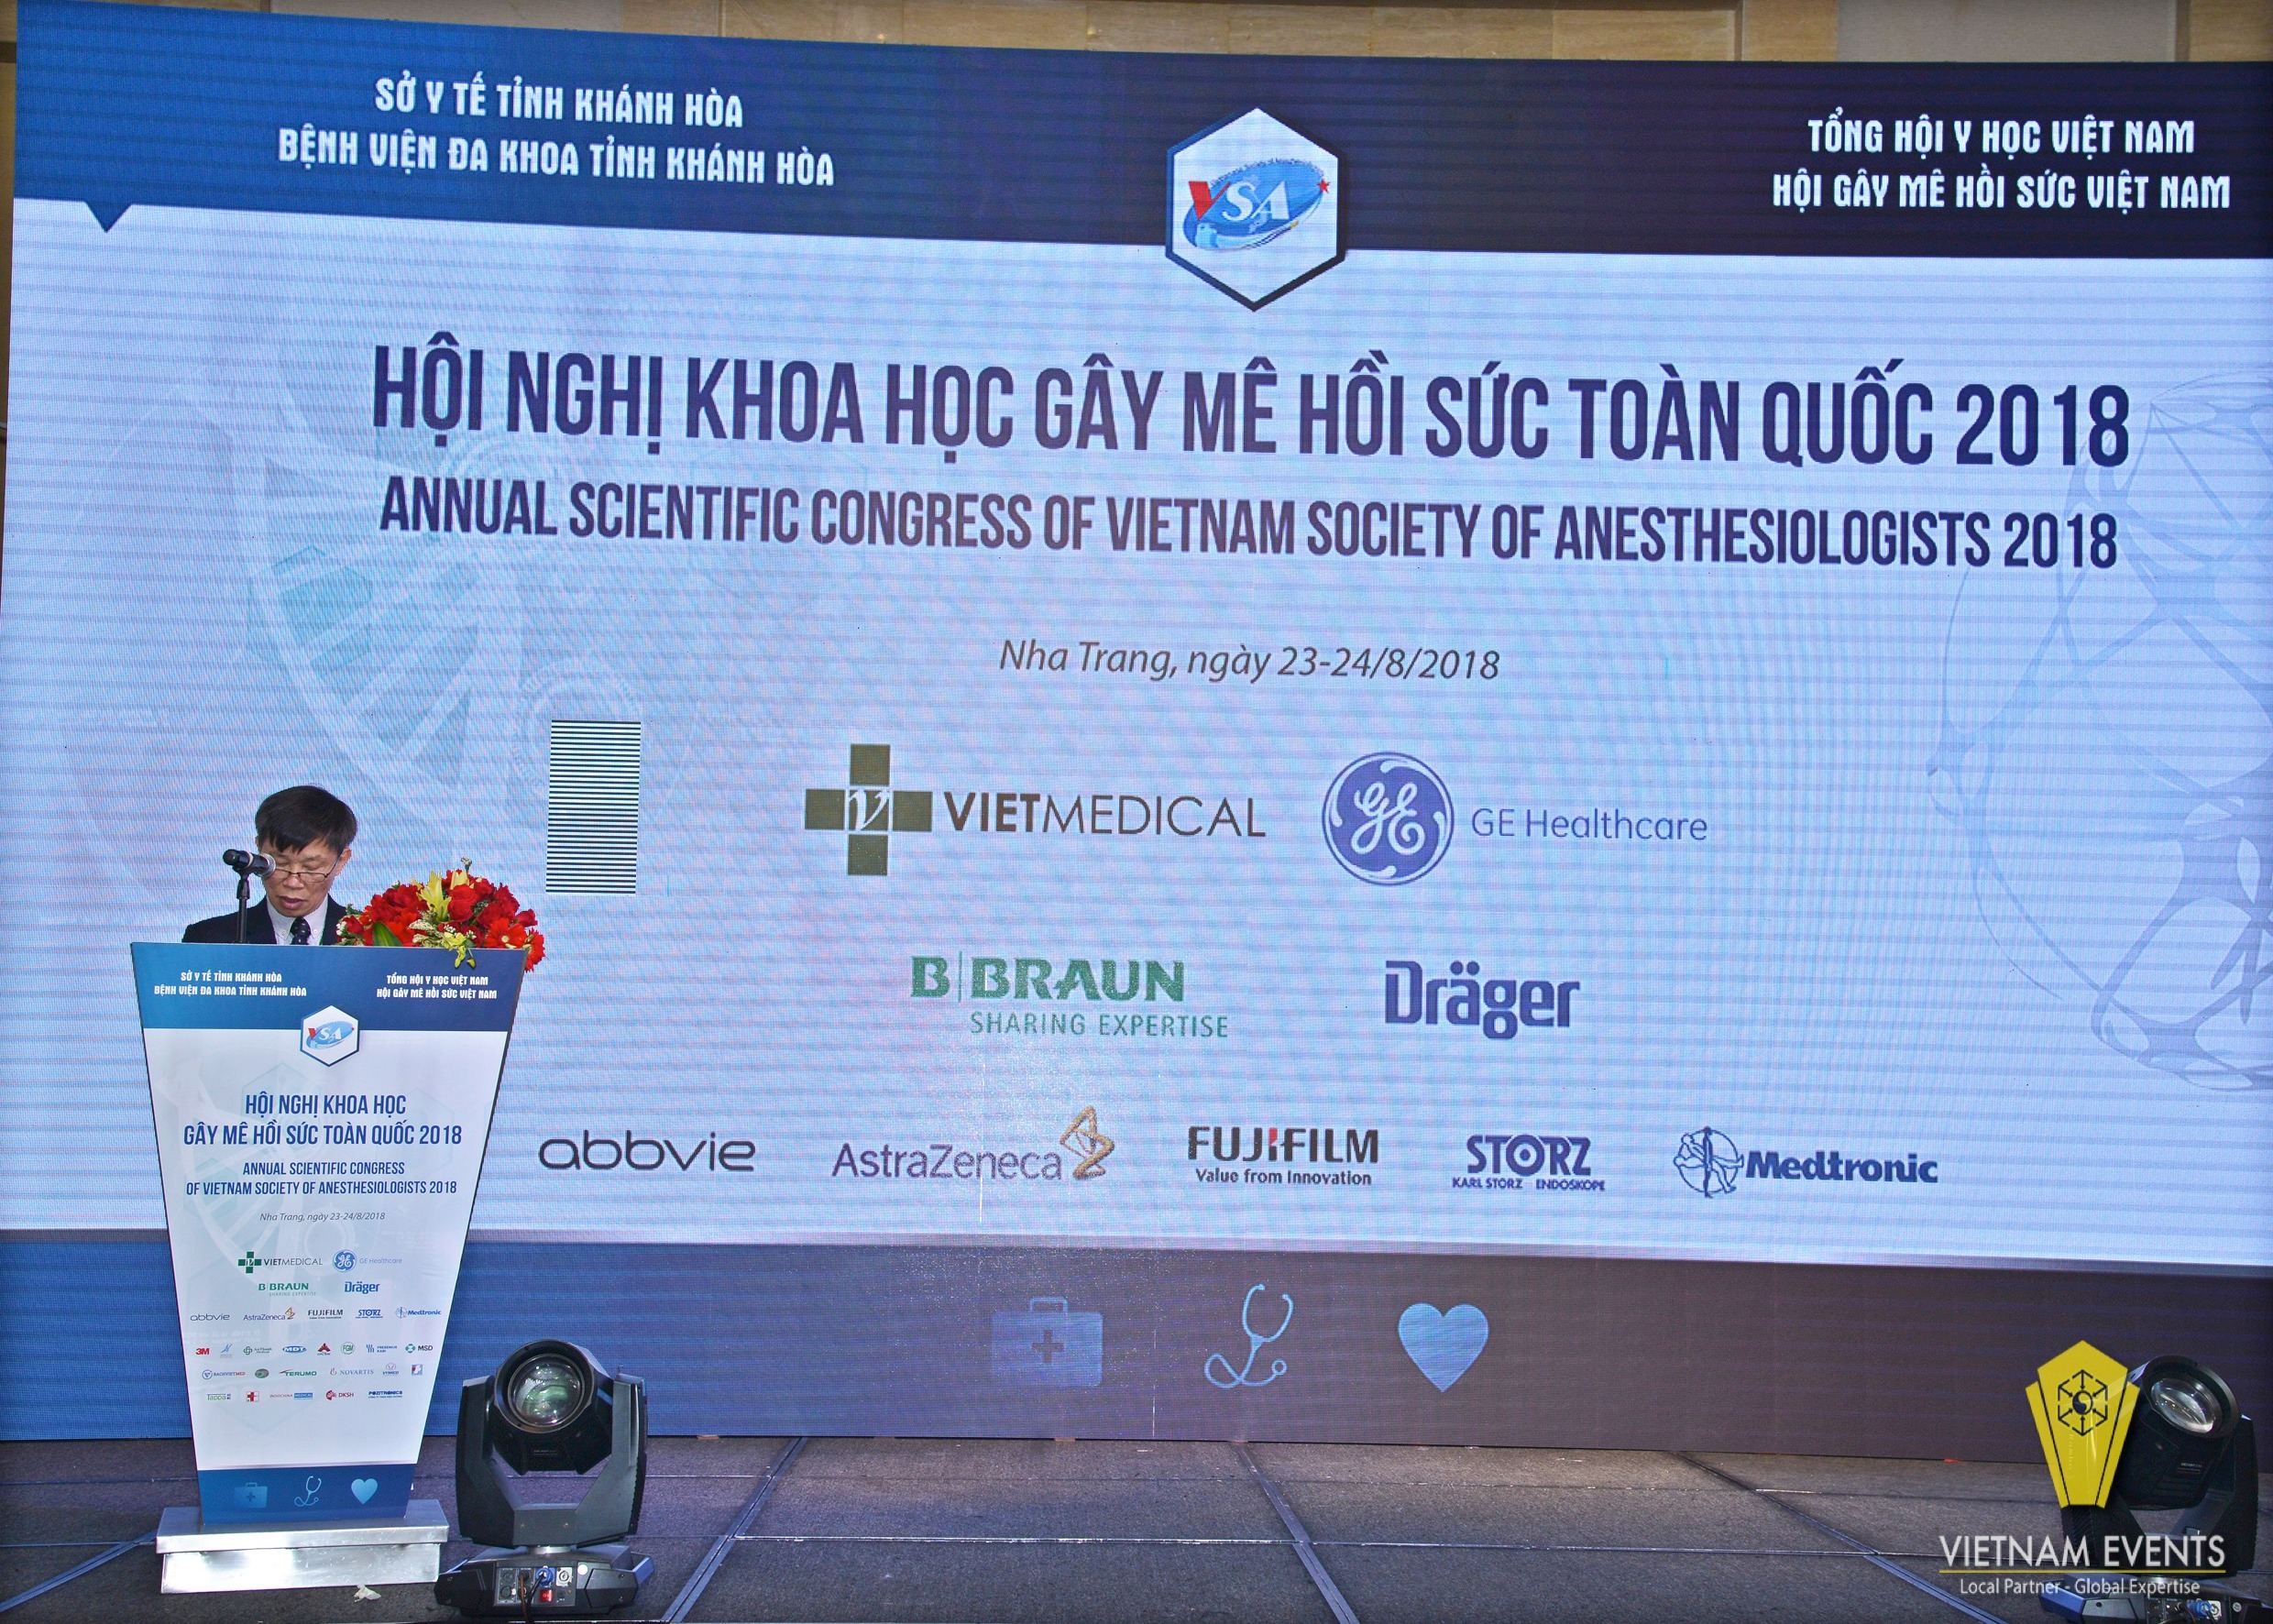 Annual Scientific Congress of Vietnam Society of Anesthesiologist 2018